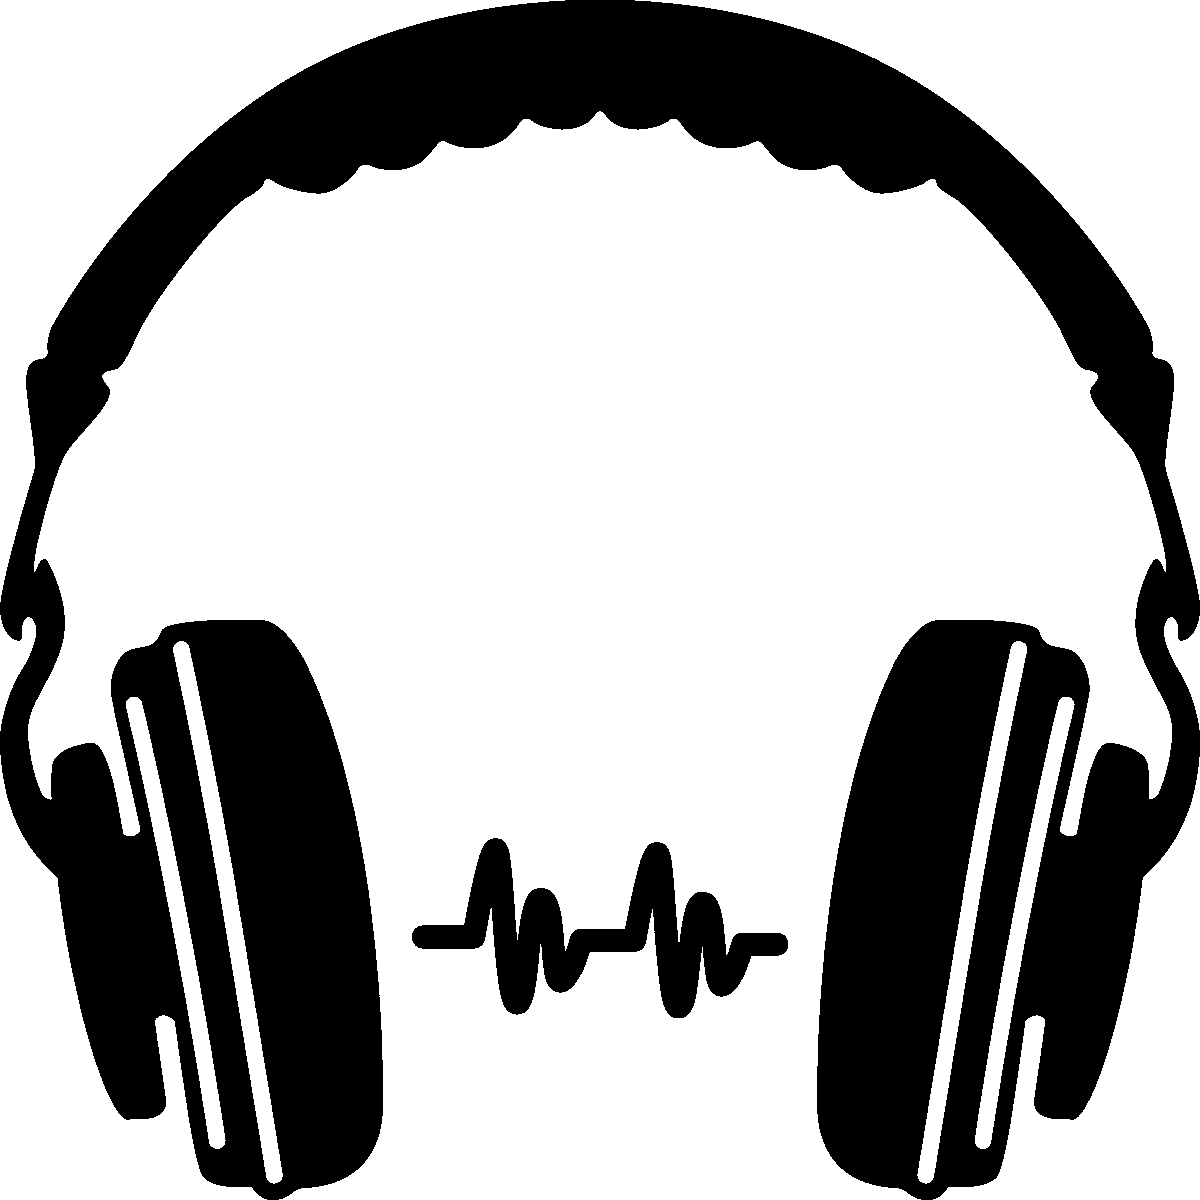 1200x1200 Download Headphone Silhouette Clip Art Hq Png Image In Different